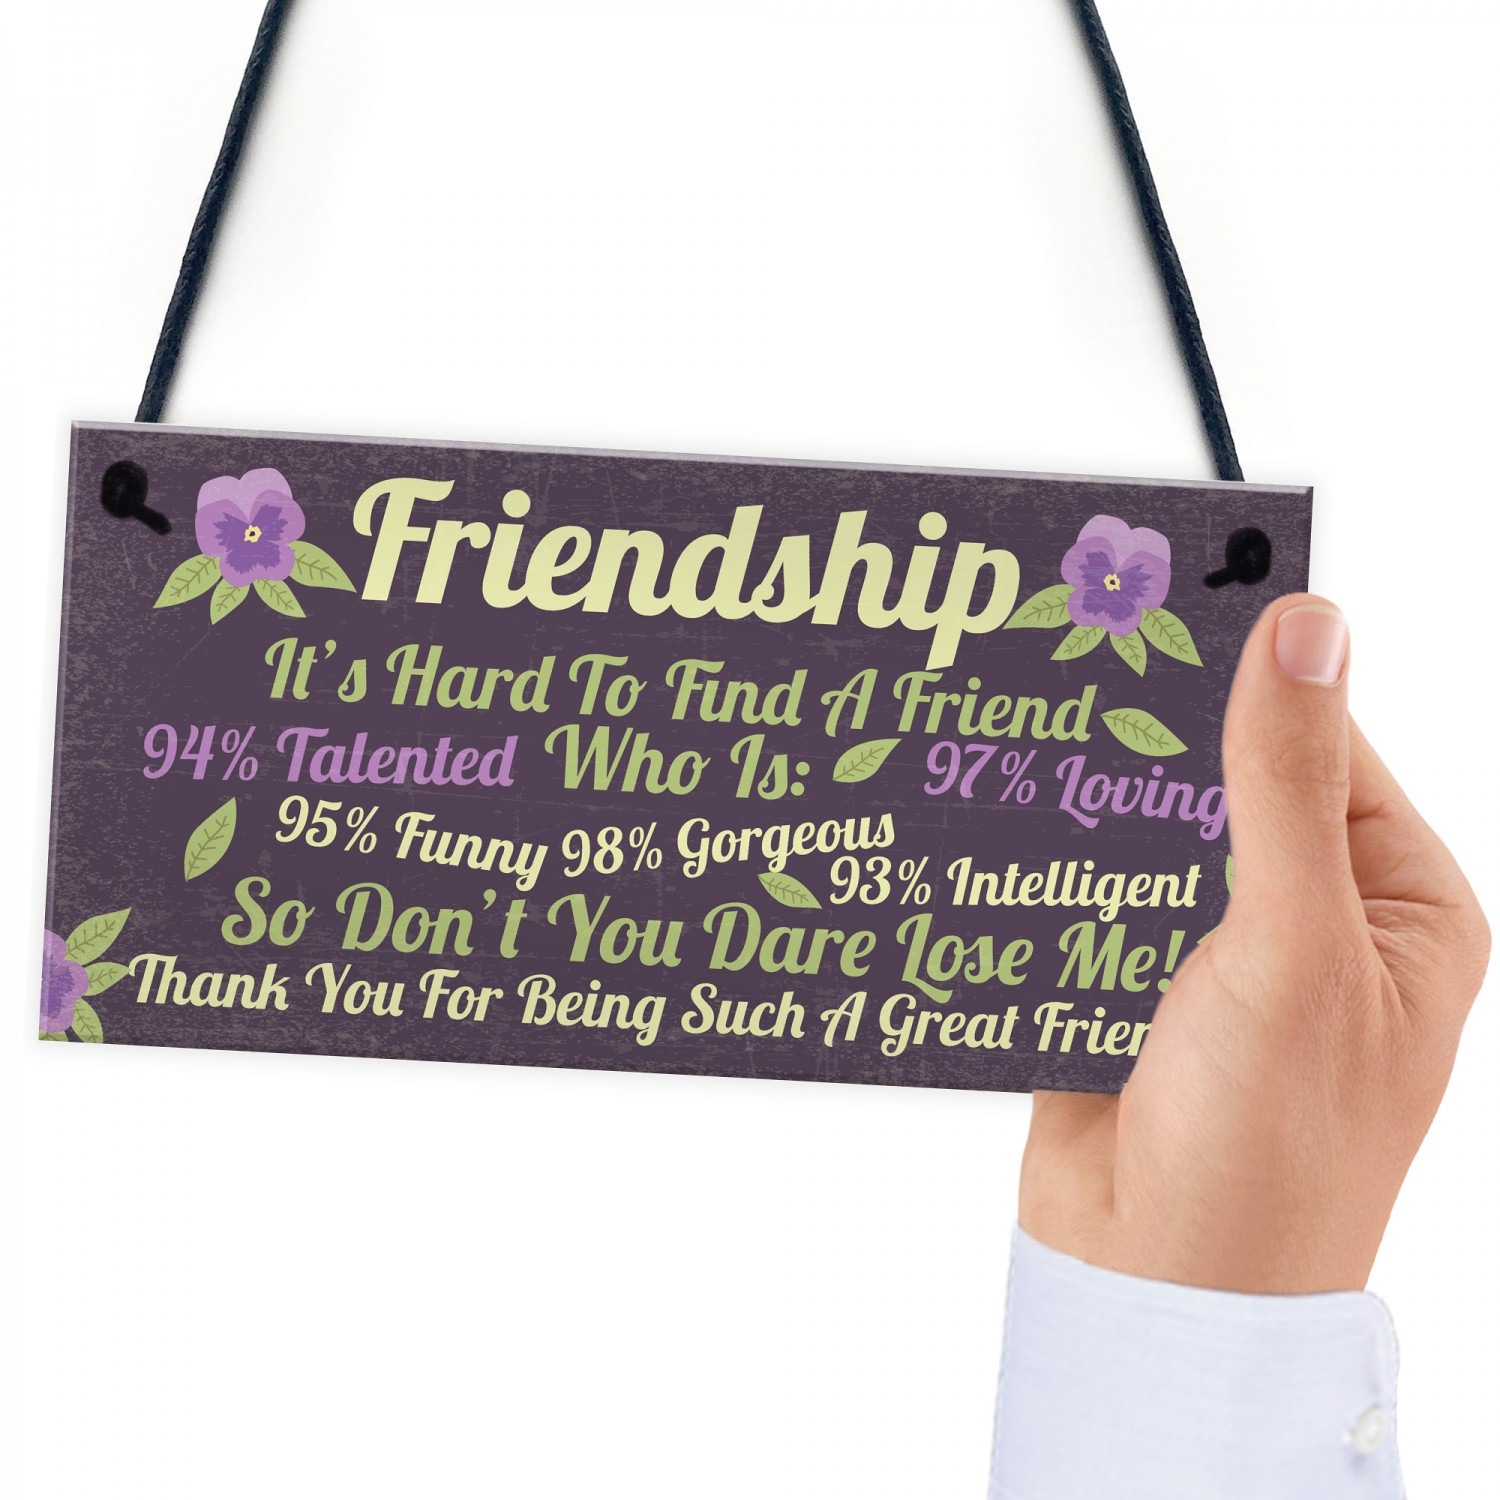 Best Friend Gift Funny Sign Birthday Present Friendship Gift: Funny Best Friend Sign Friendship Gift Plaque Thank You